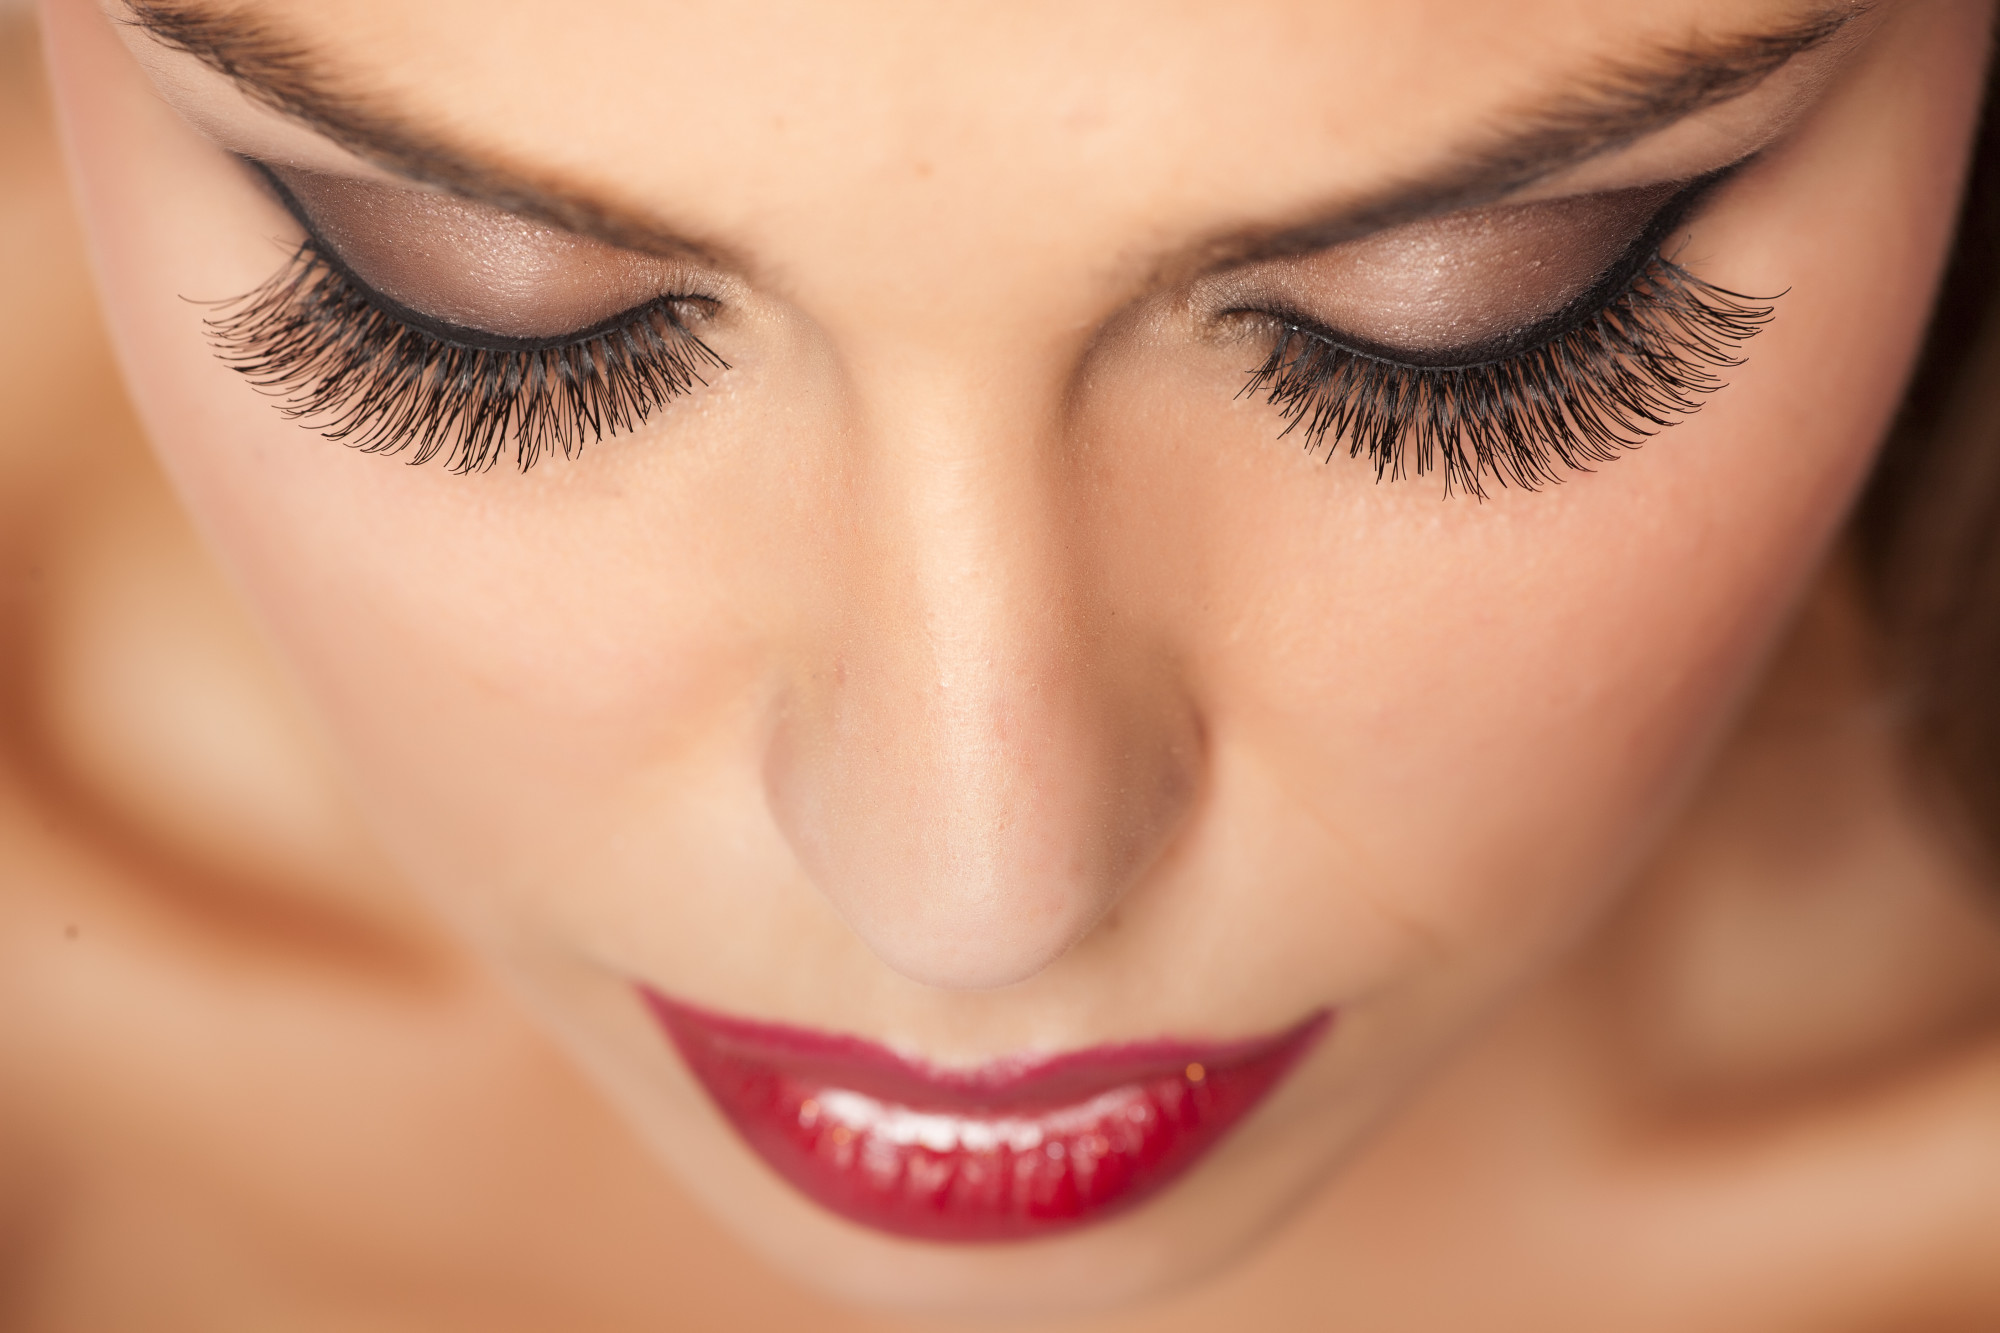 False Lashes vs Lash Extensions: Which Is Better for Your Lifestyle?